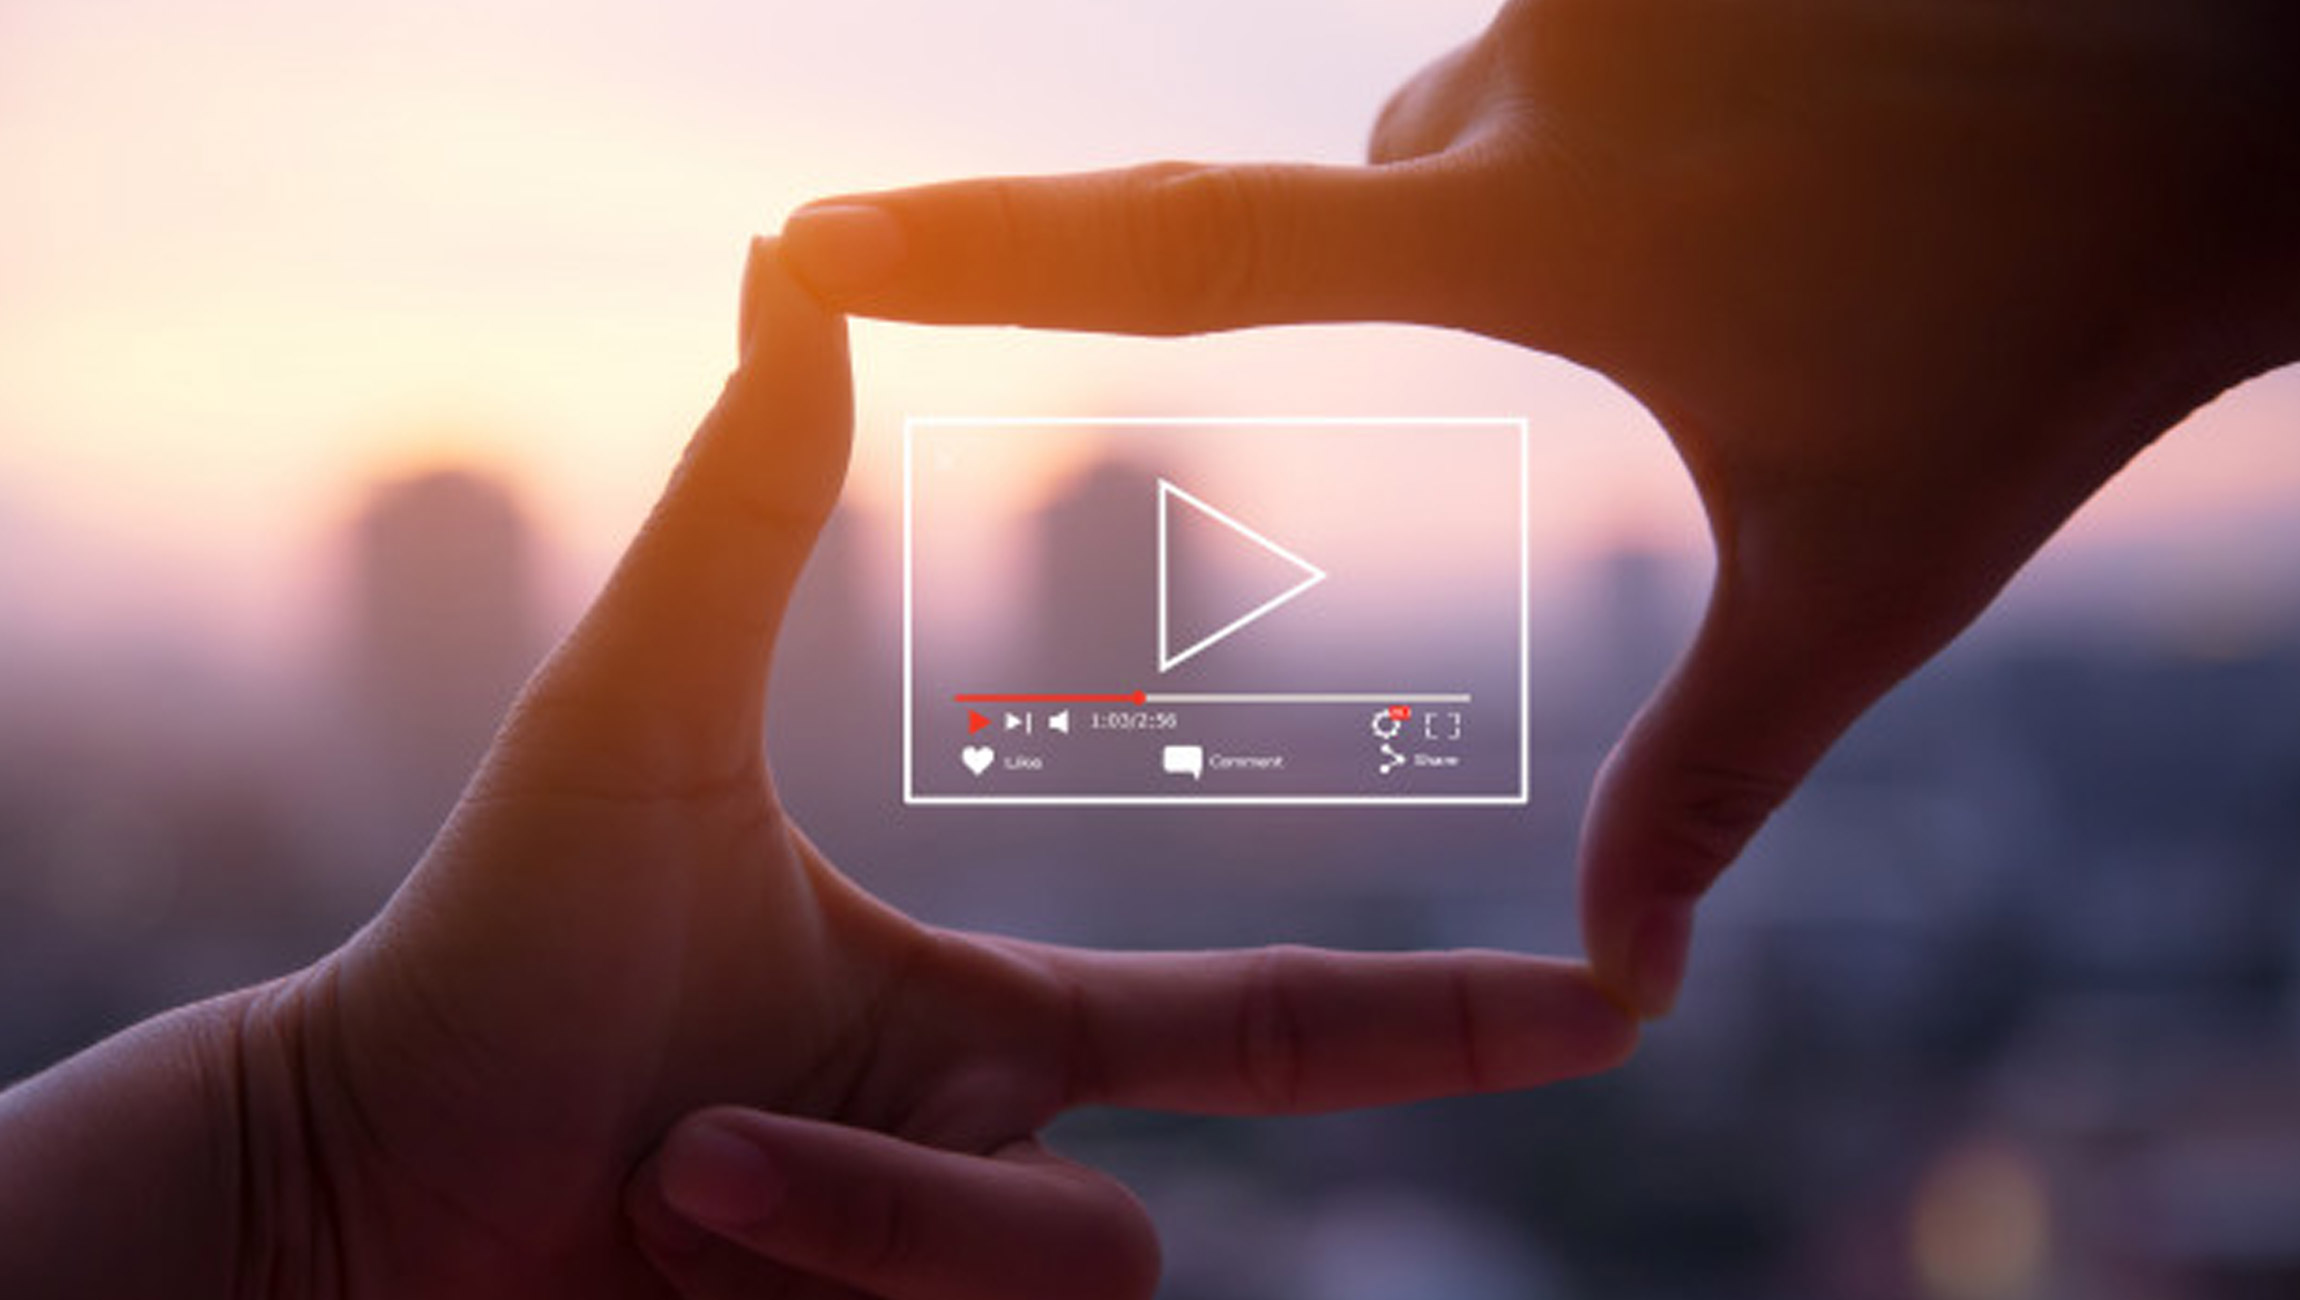 Fishbat Shares 4 YouTube Content Trends To Highlight This Year